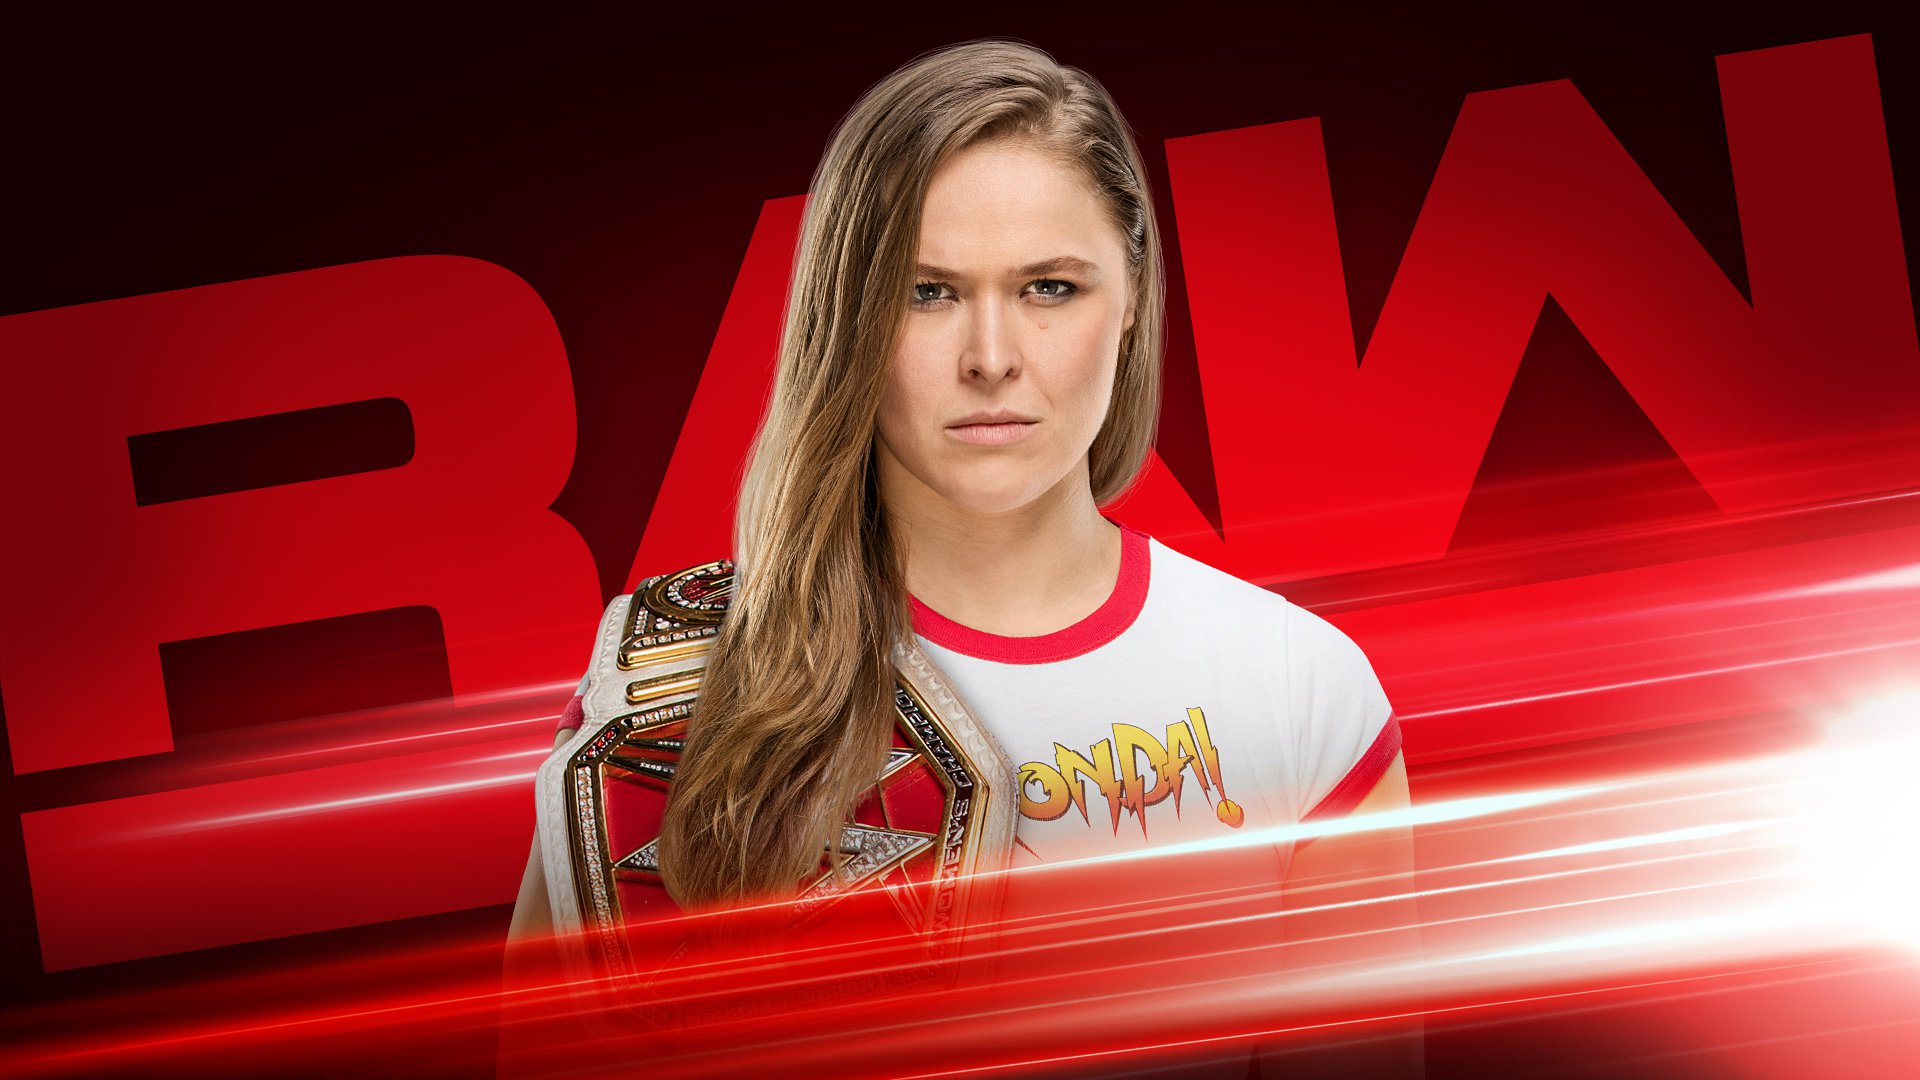 Wwe monday night raw preview for brothers of - Ronda rousey wallpaper ...